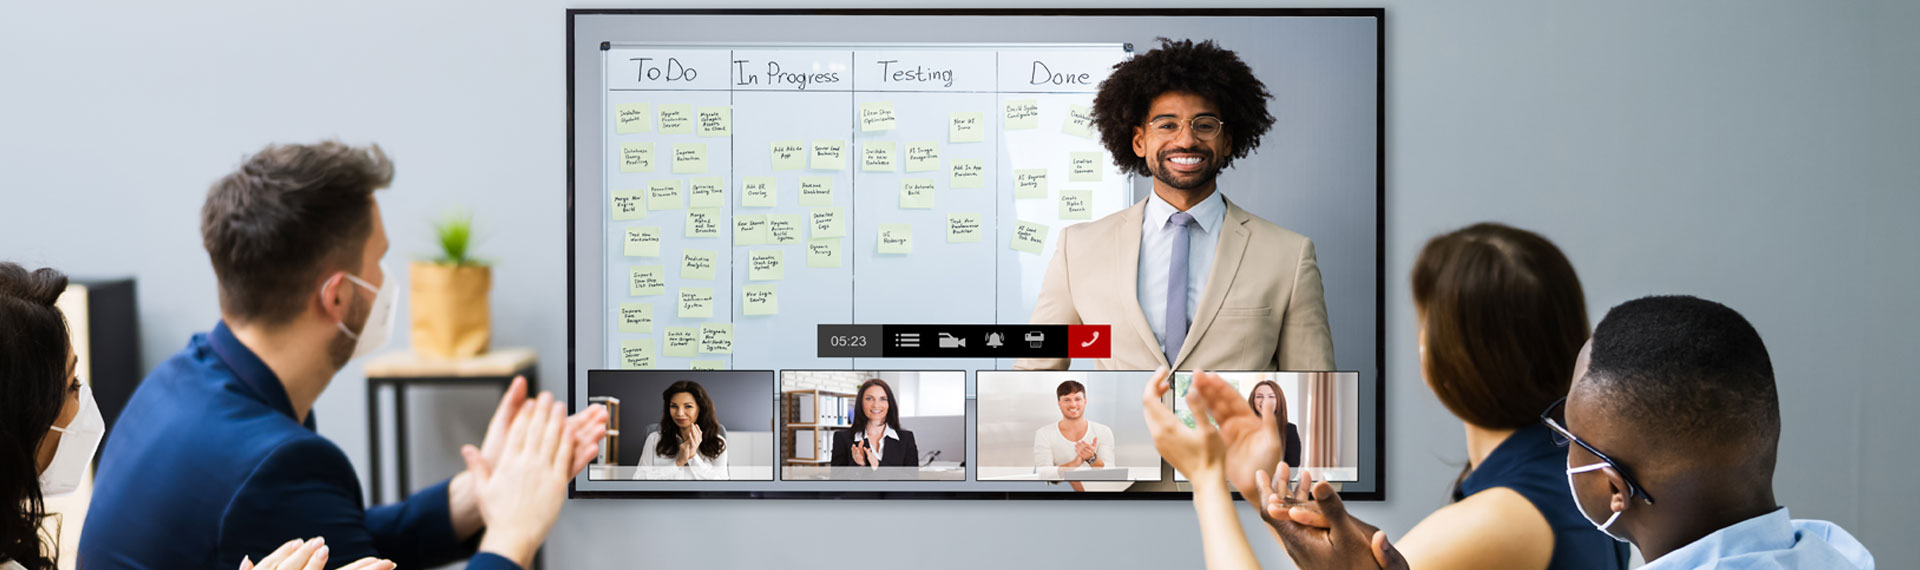 Video-Conferencing-Technology